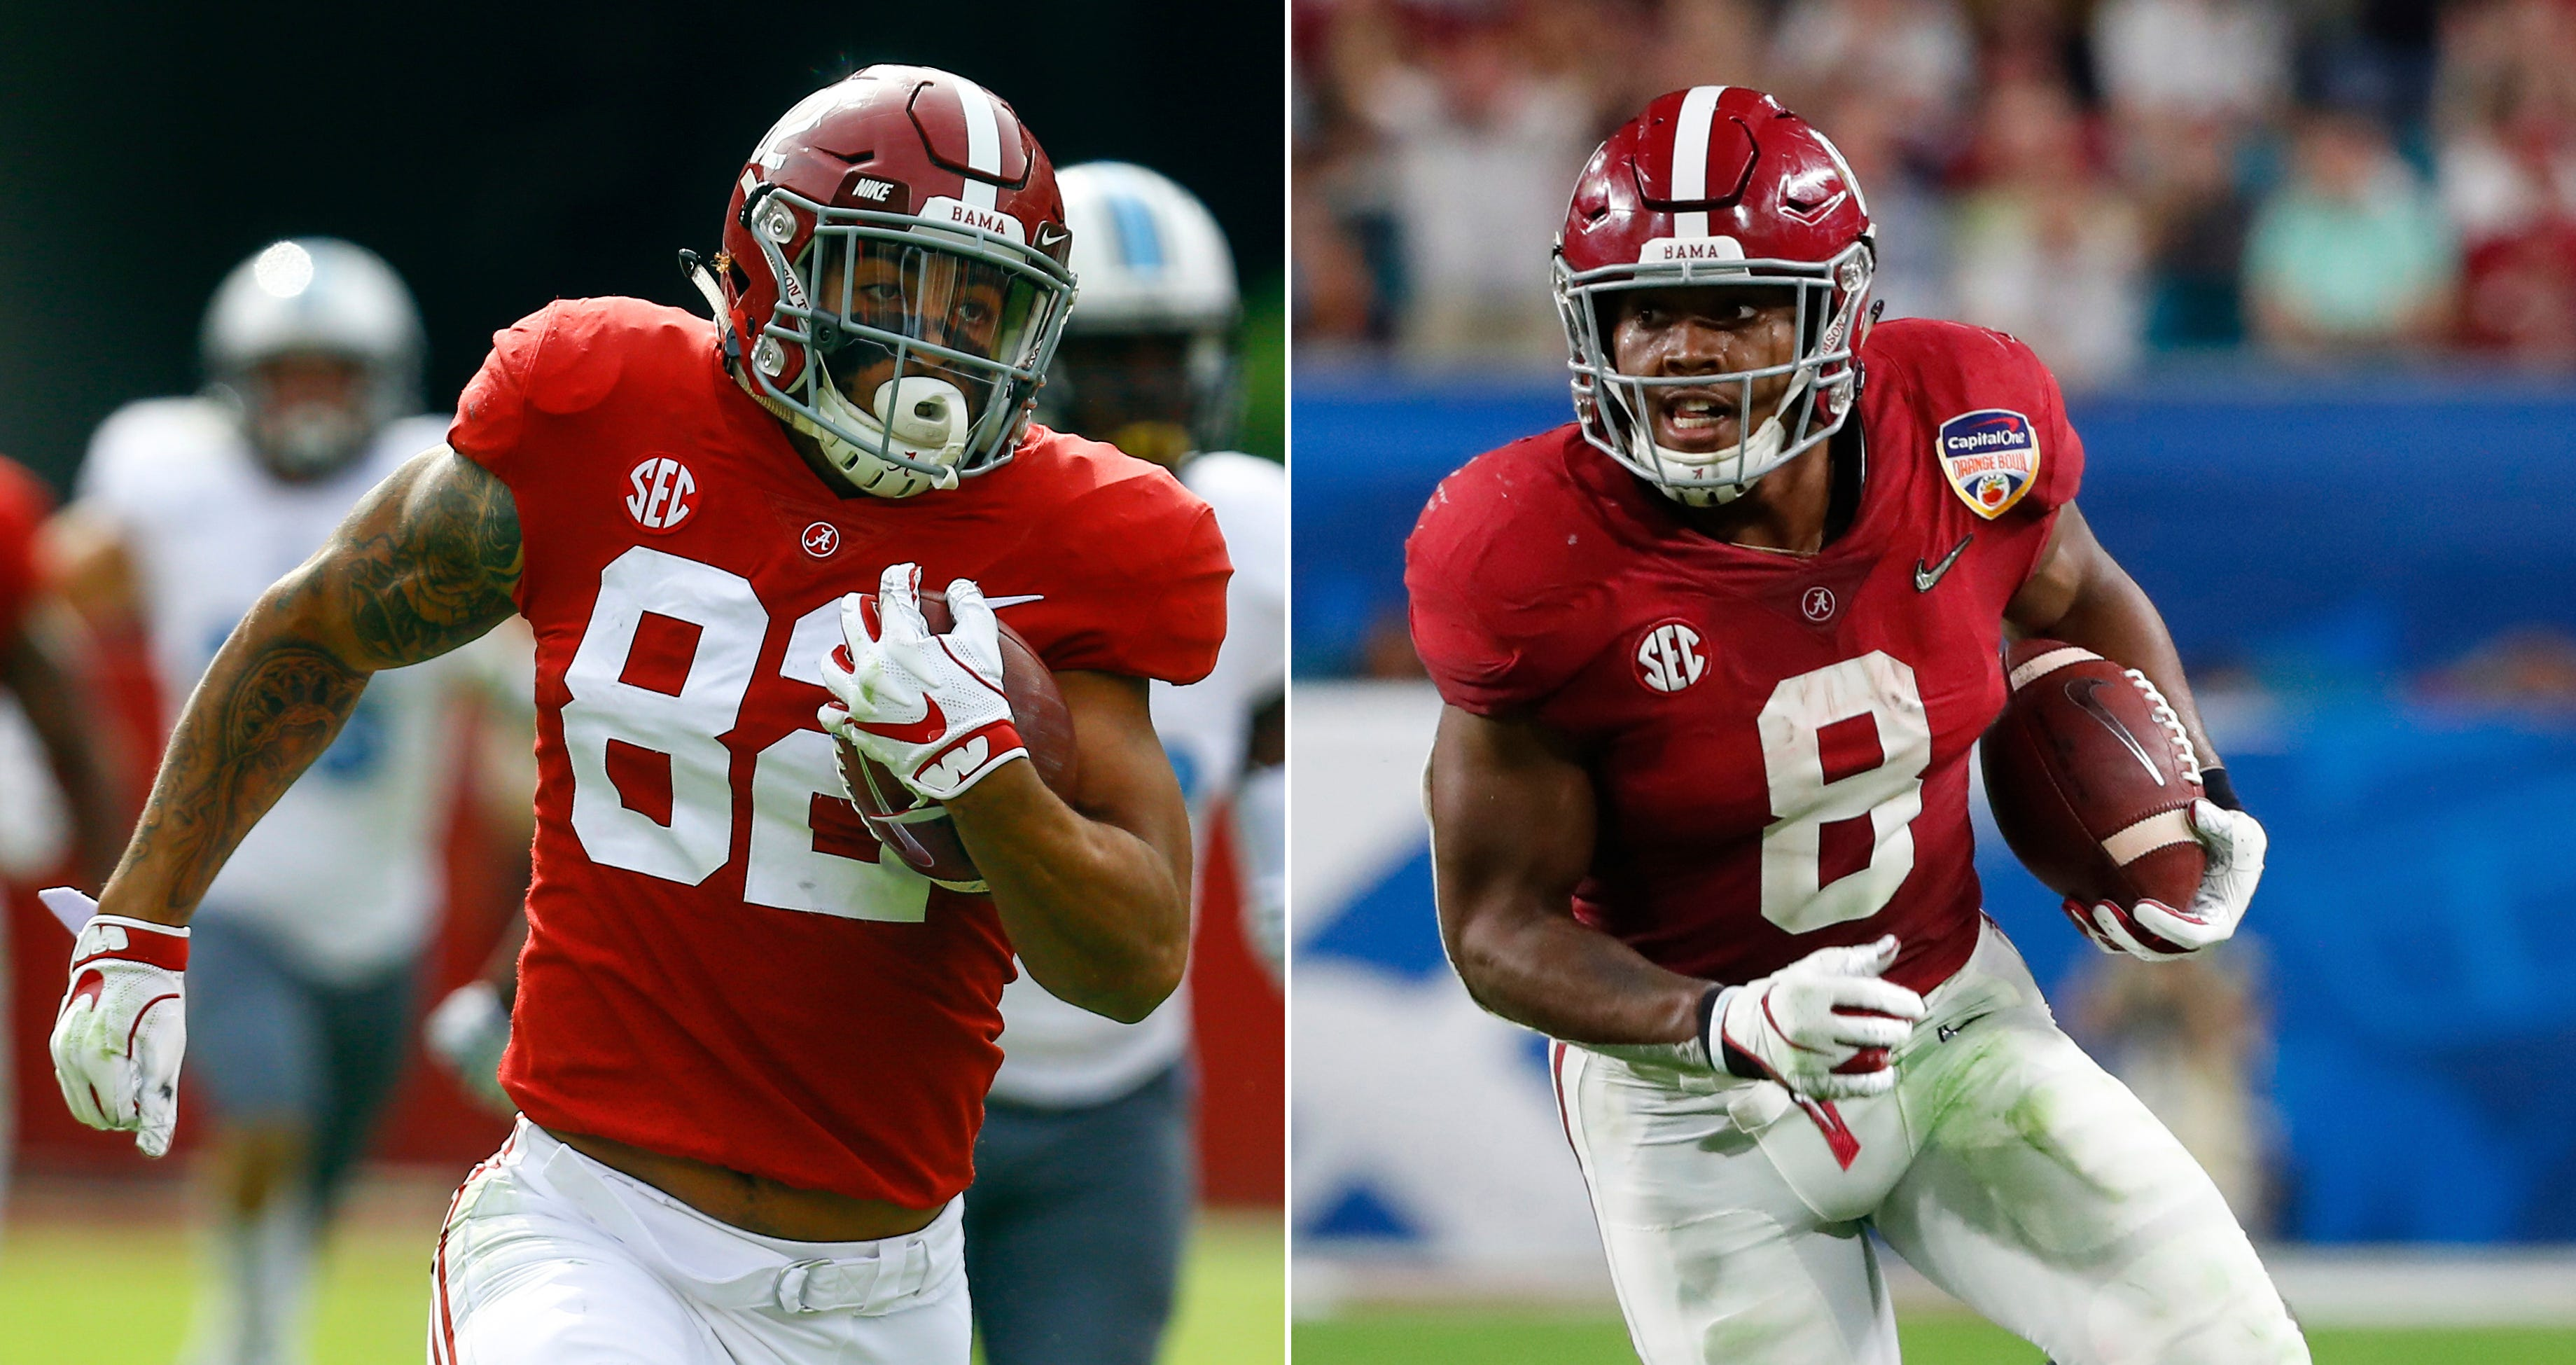 4 Alabama players announce they are declaring for NFL draft